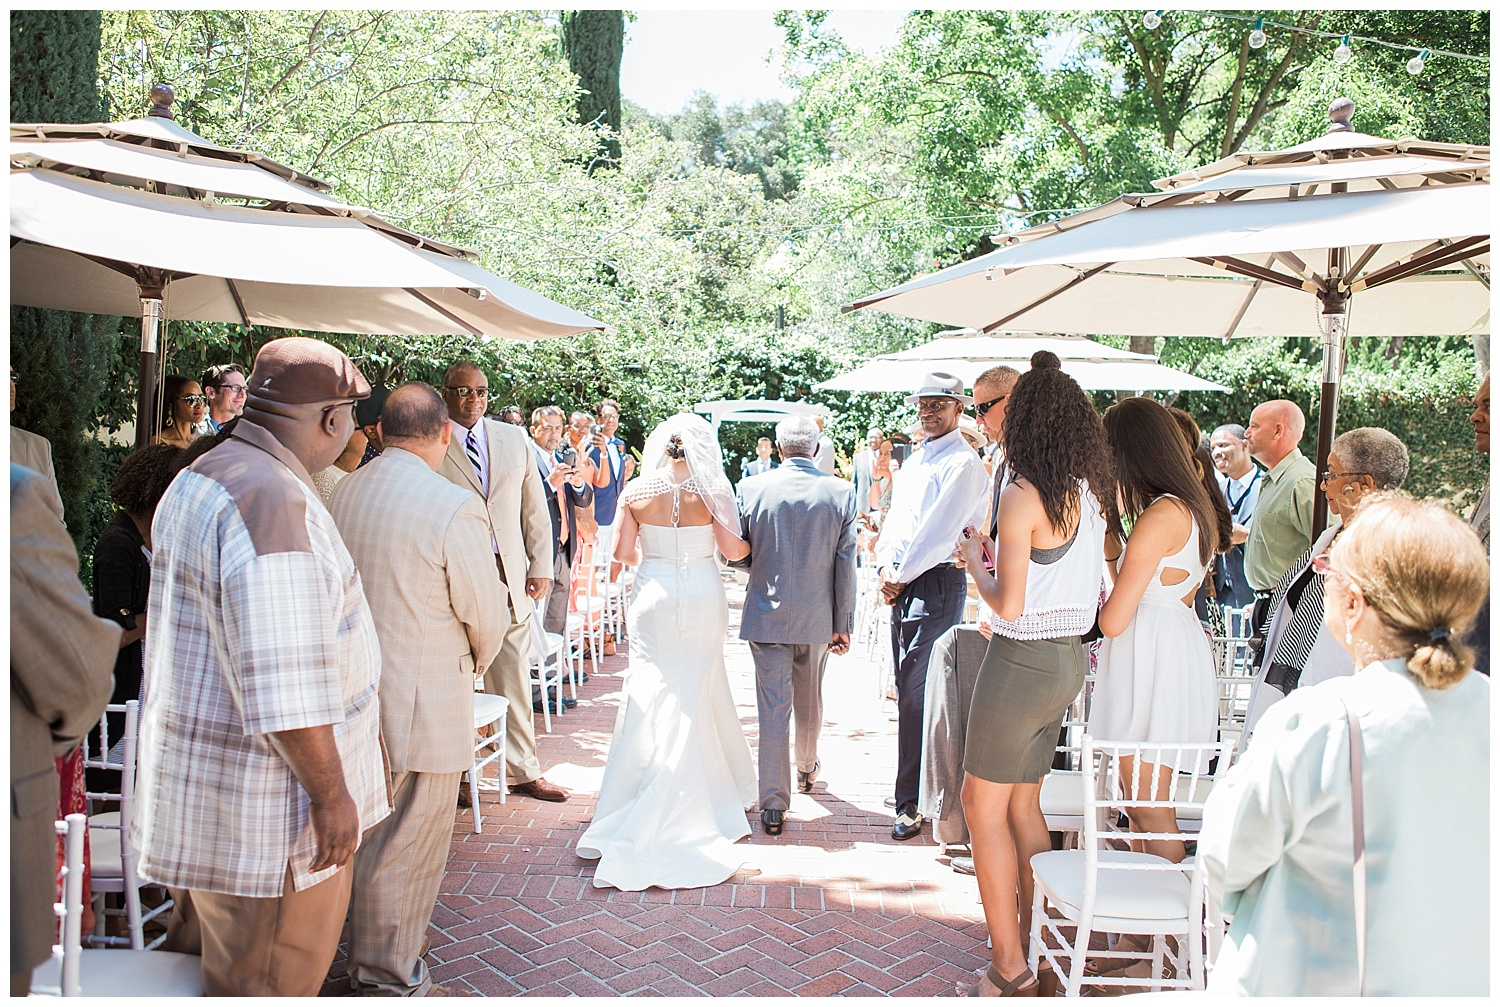 SACRAMENTO_WEDDING_VIZCAYA_PHOTOGRAPHY_SUNFLOWERS_NICOLEQUIROZ_09.jpg